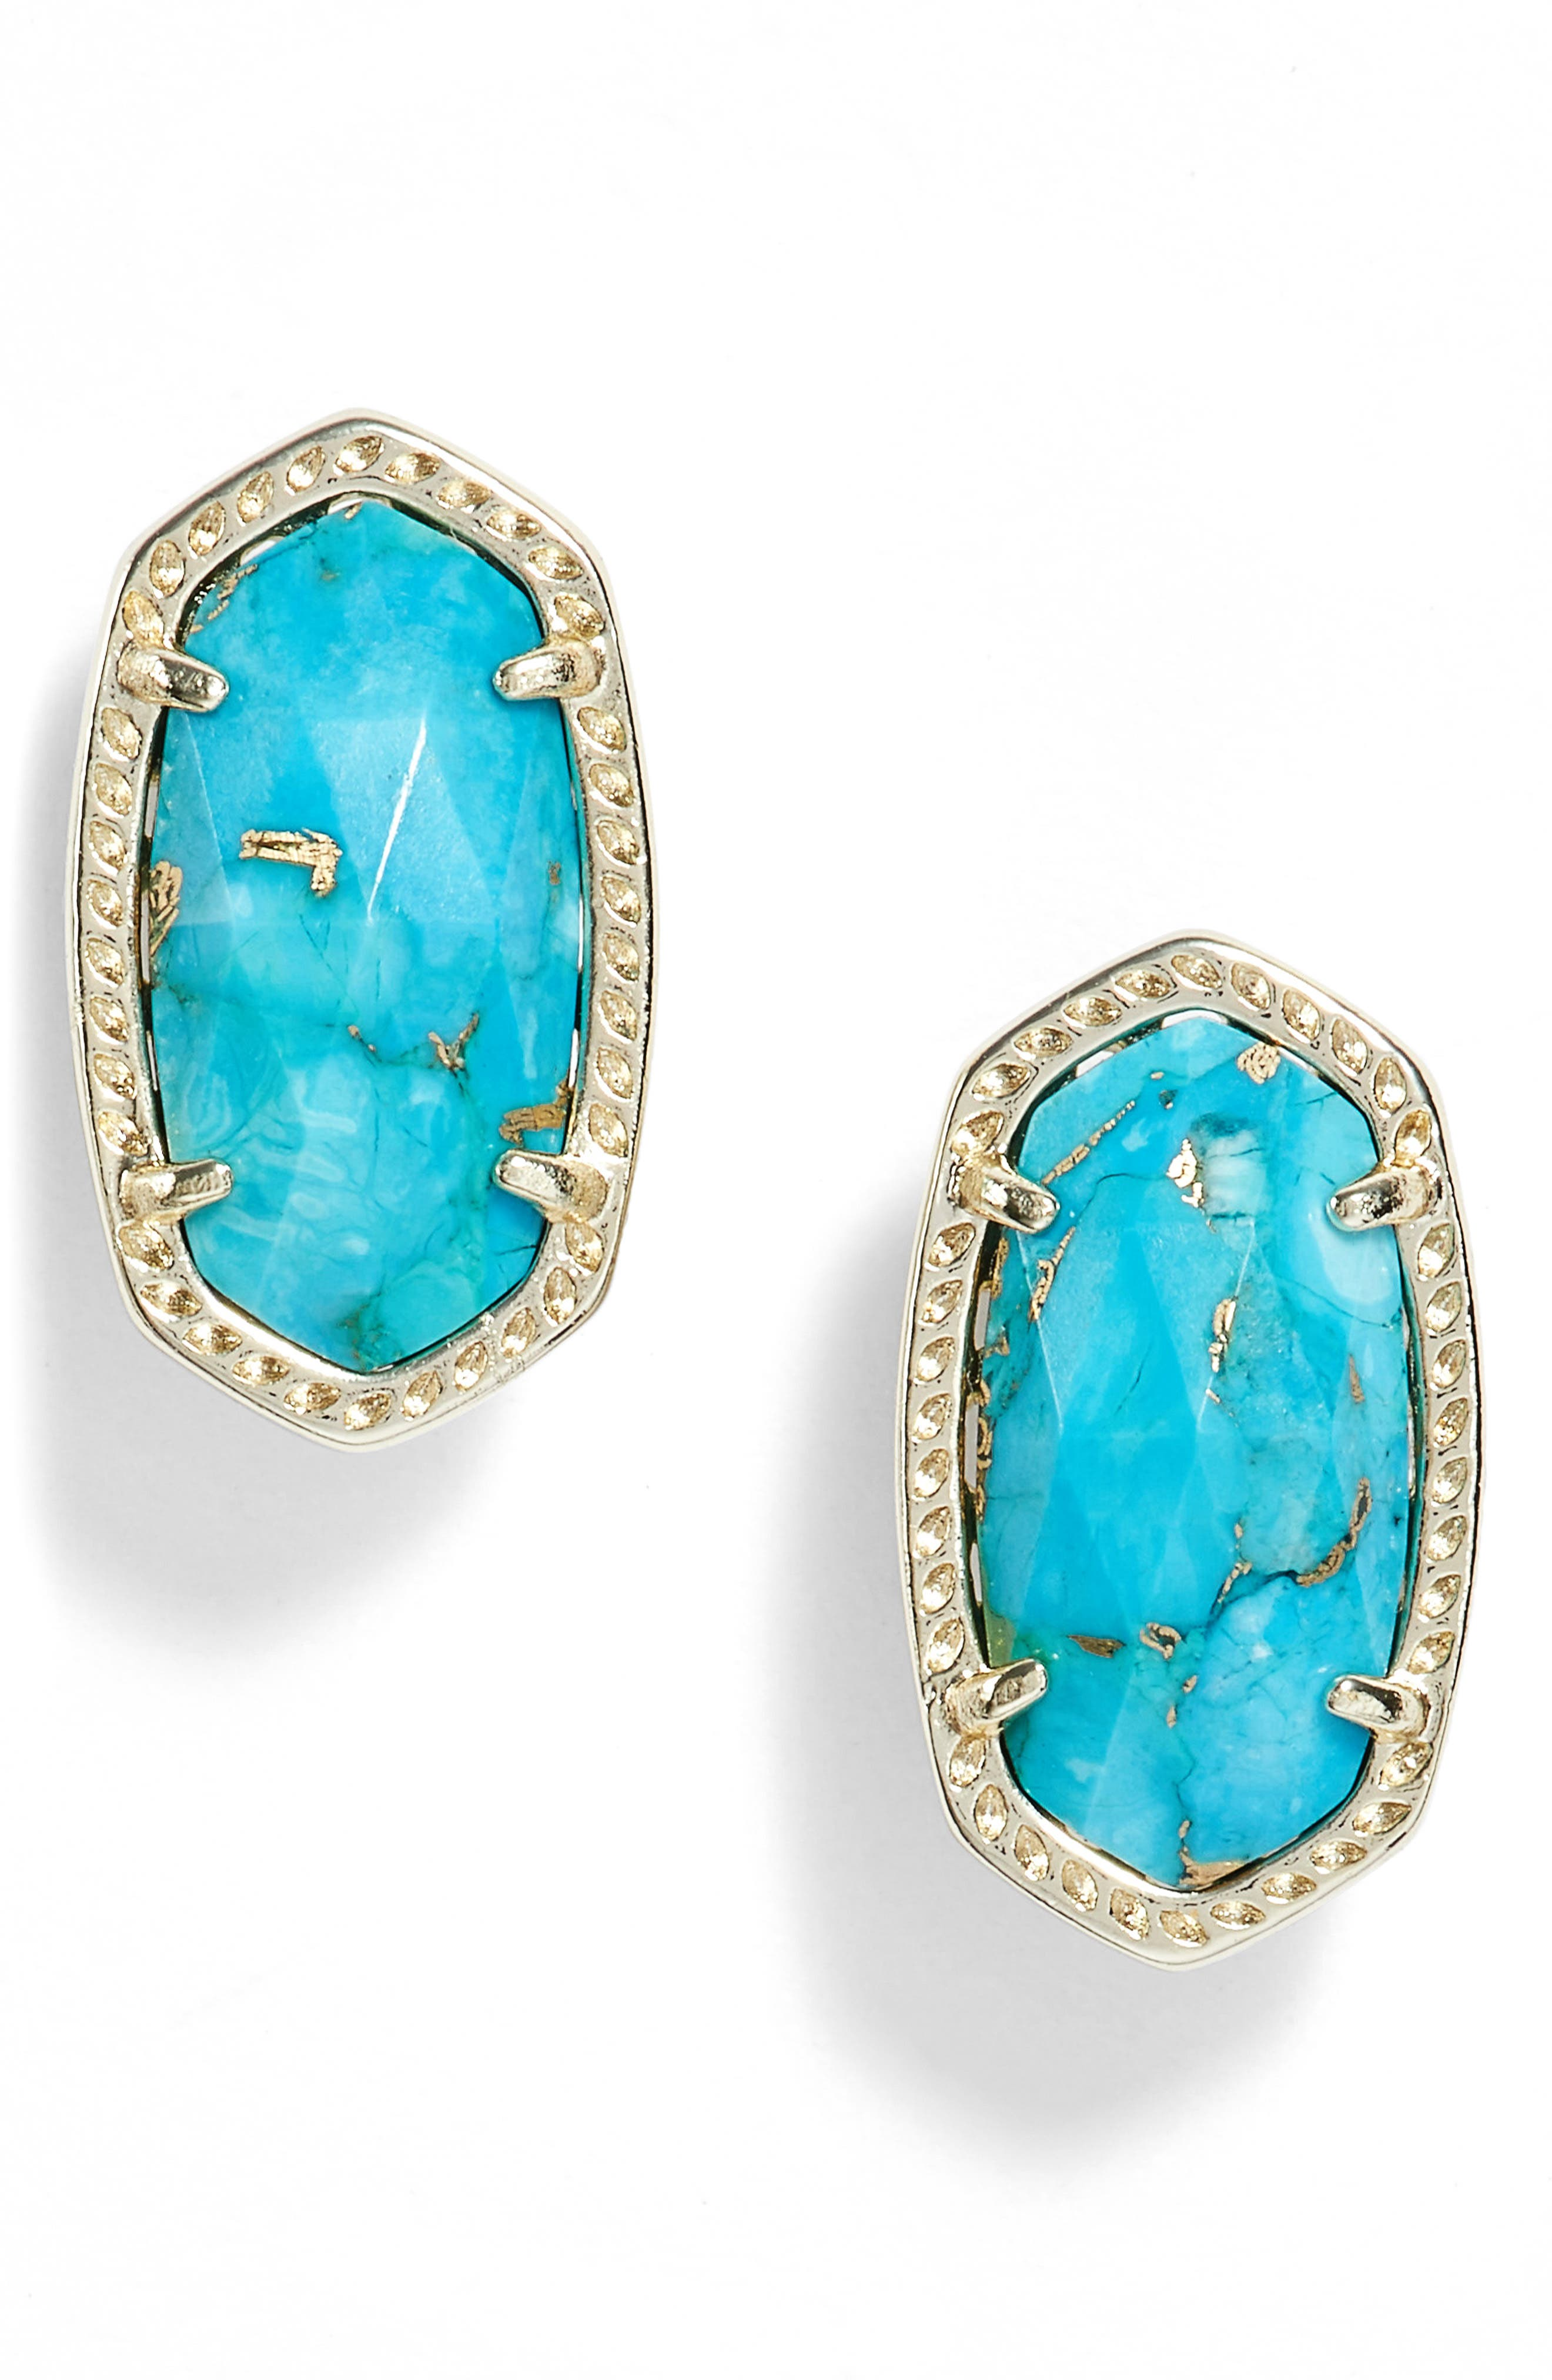 Alternate Image 1 Selected - Kendra Scott Ellie Oval Stone Stud Earrings